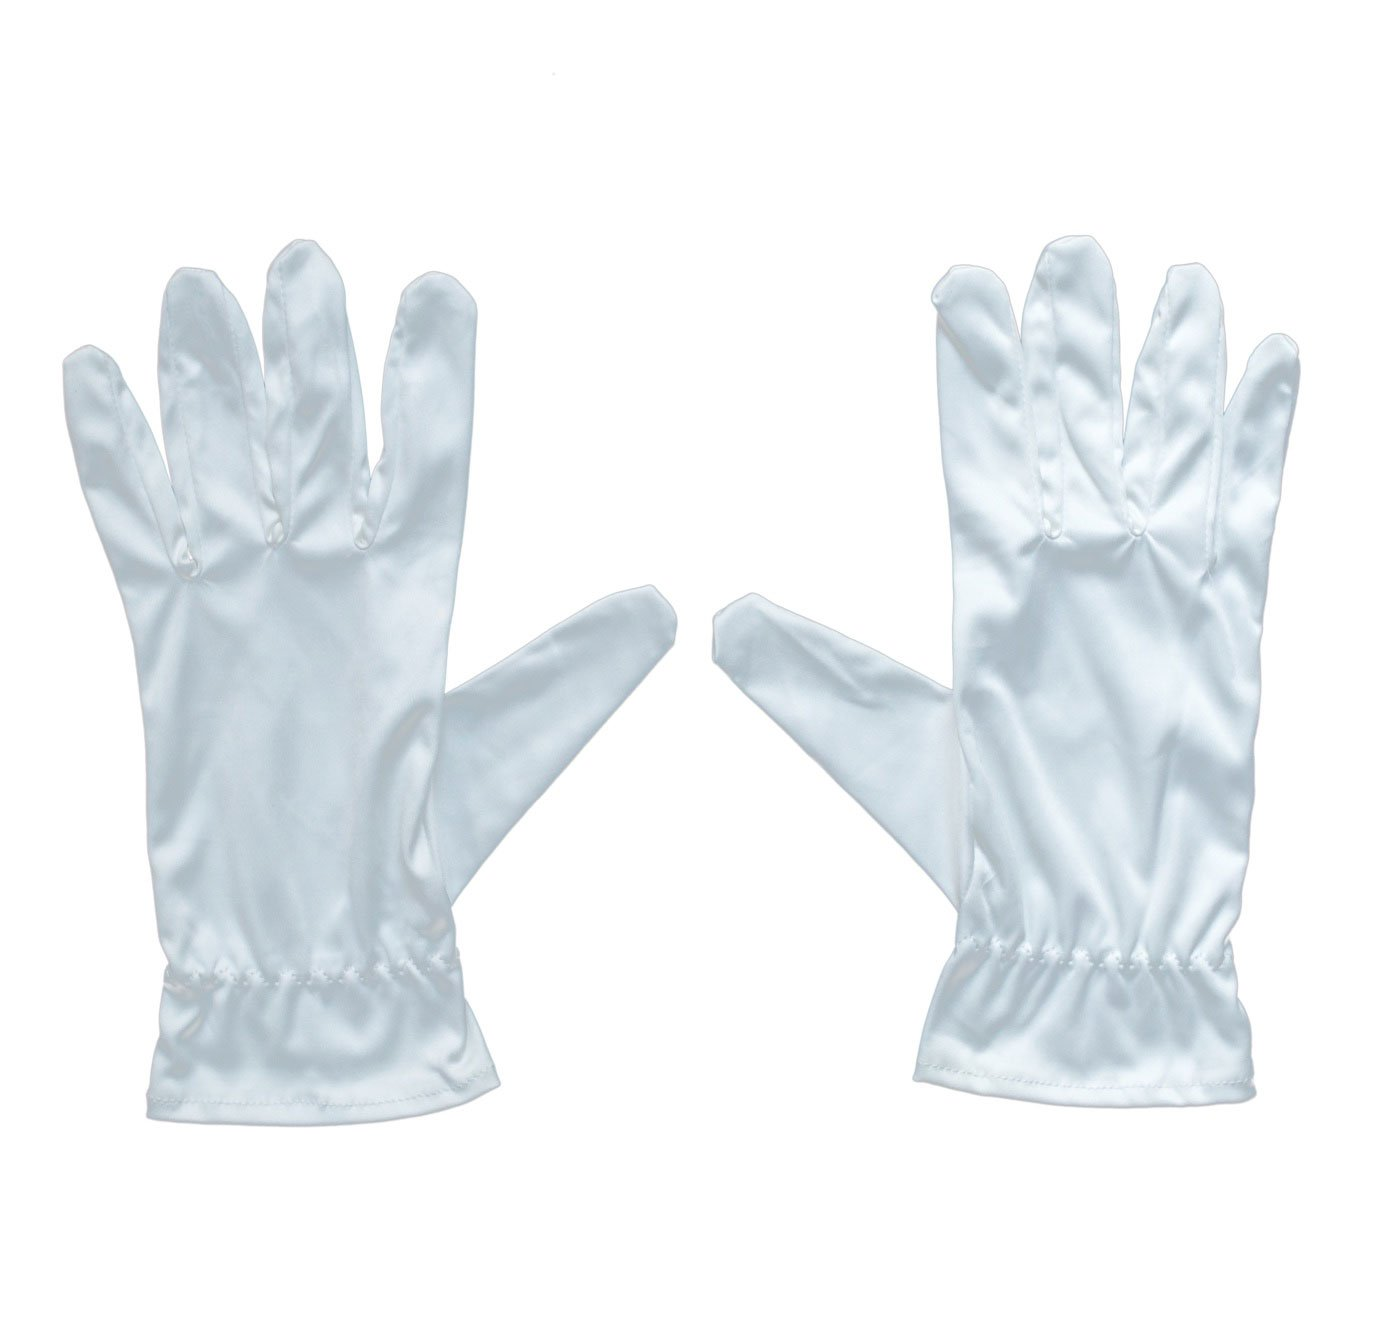 Microfiber Cleaning Cloth. All Purpose Cleaning Gloves in White. (1 Pair) by Verona Love